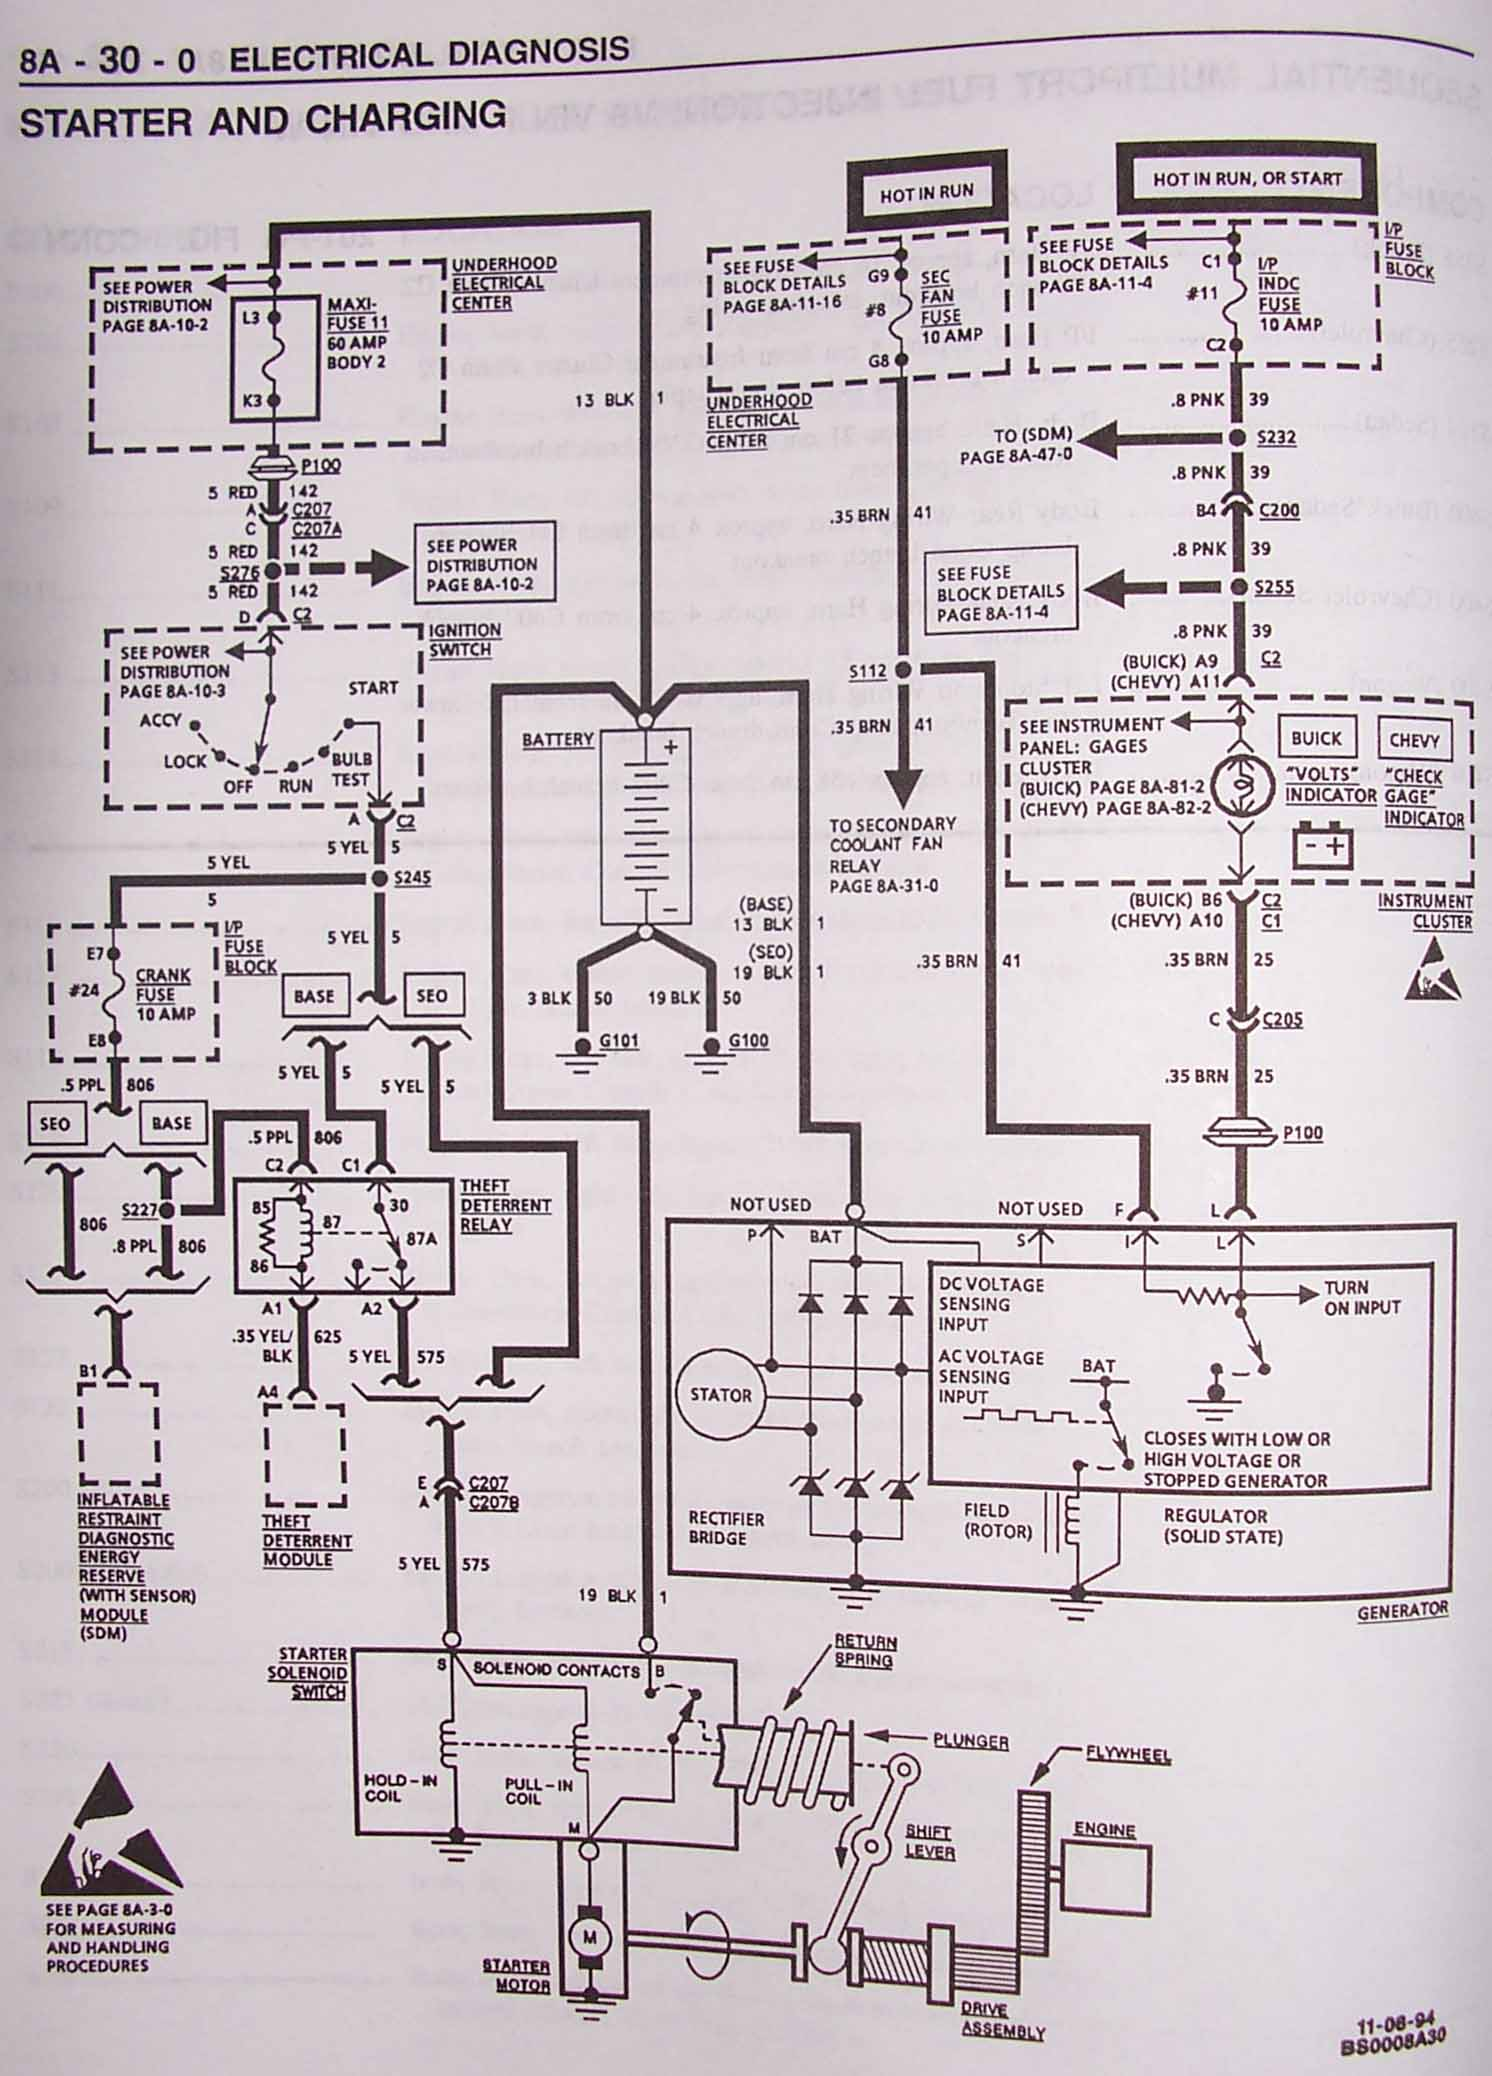 hight resolution of 97 camaro wiring diagram wiring diagram97 camaro wiring diagrams wiring diagram sample97 camaro wiring diagrams wiring